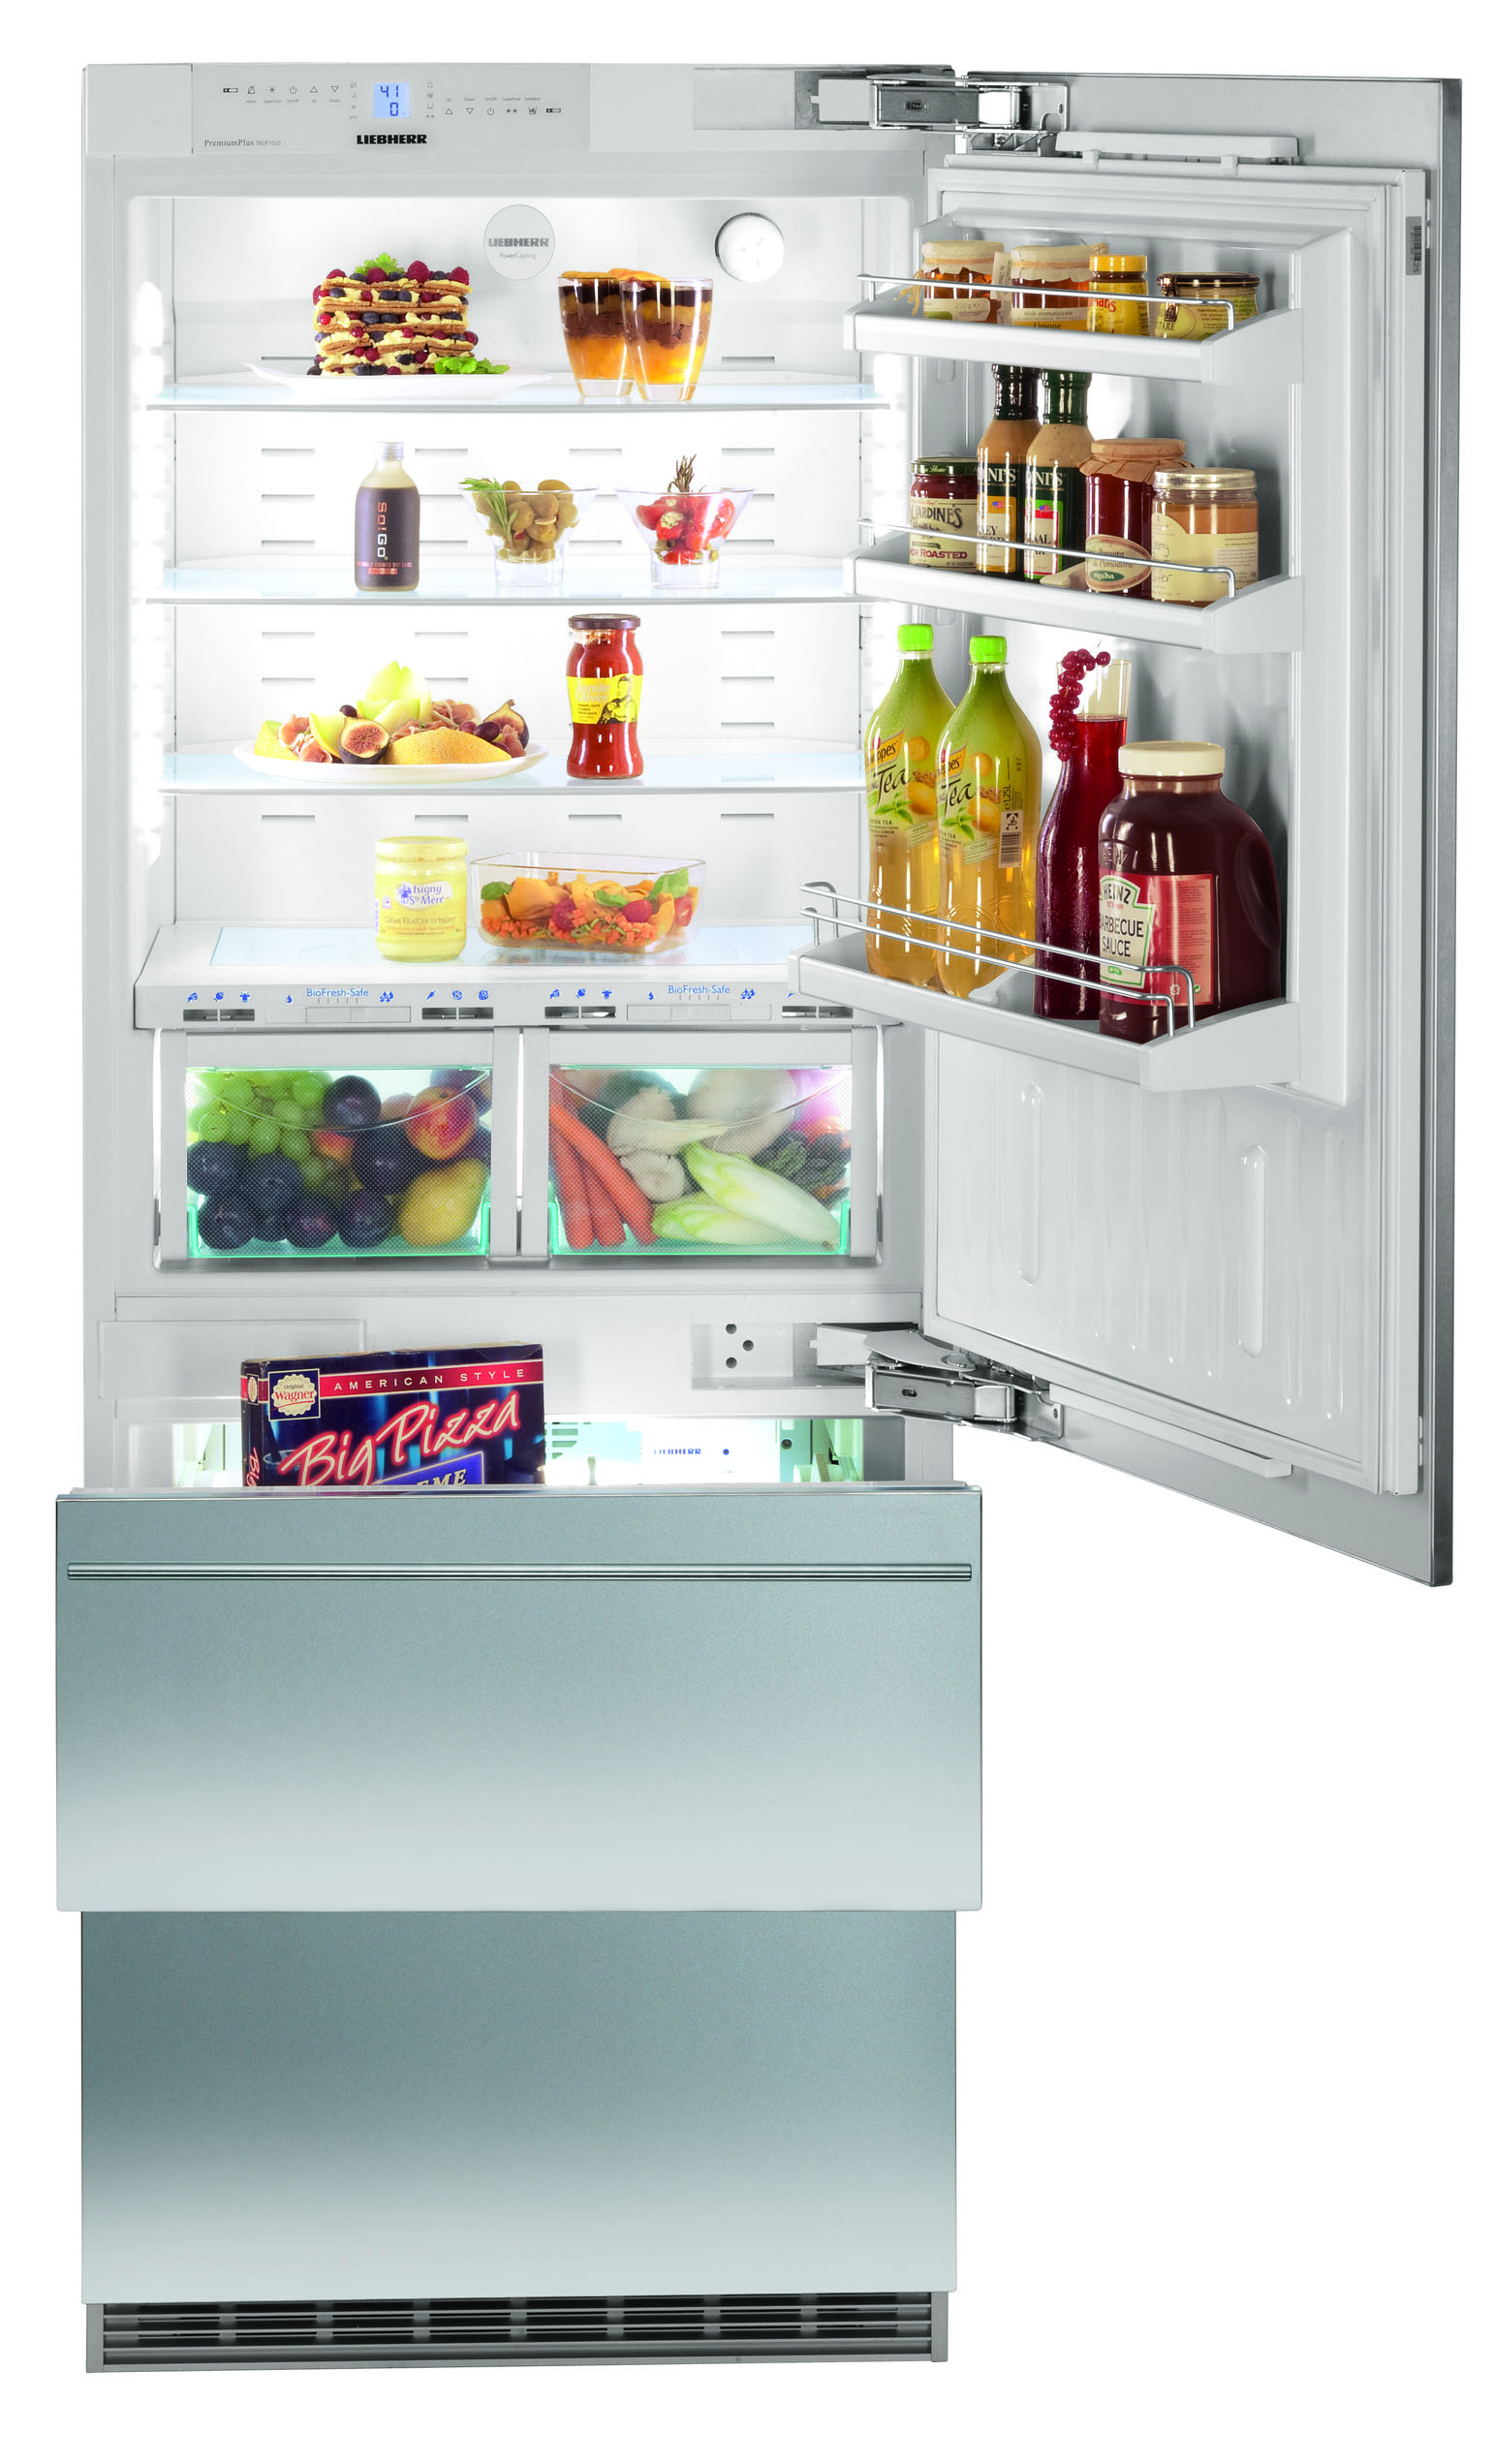 "HCB 1560 and HC 1540 fully integrated 30"" single door refrigerator-freezer combination"